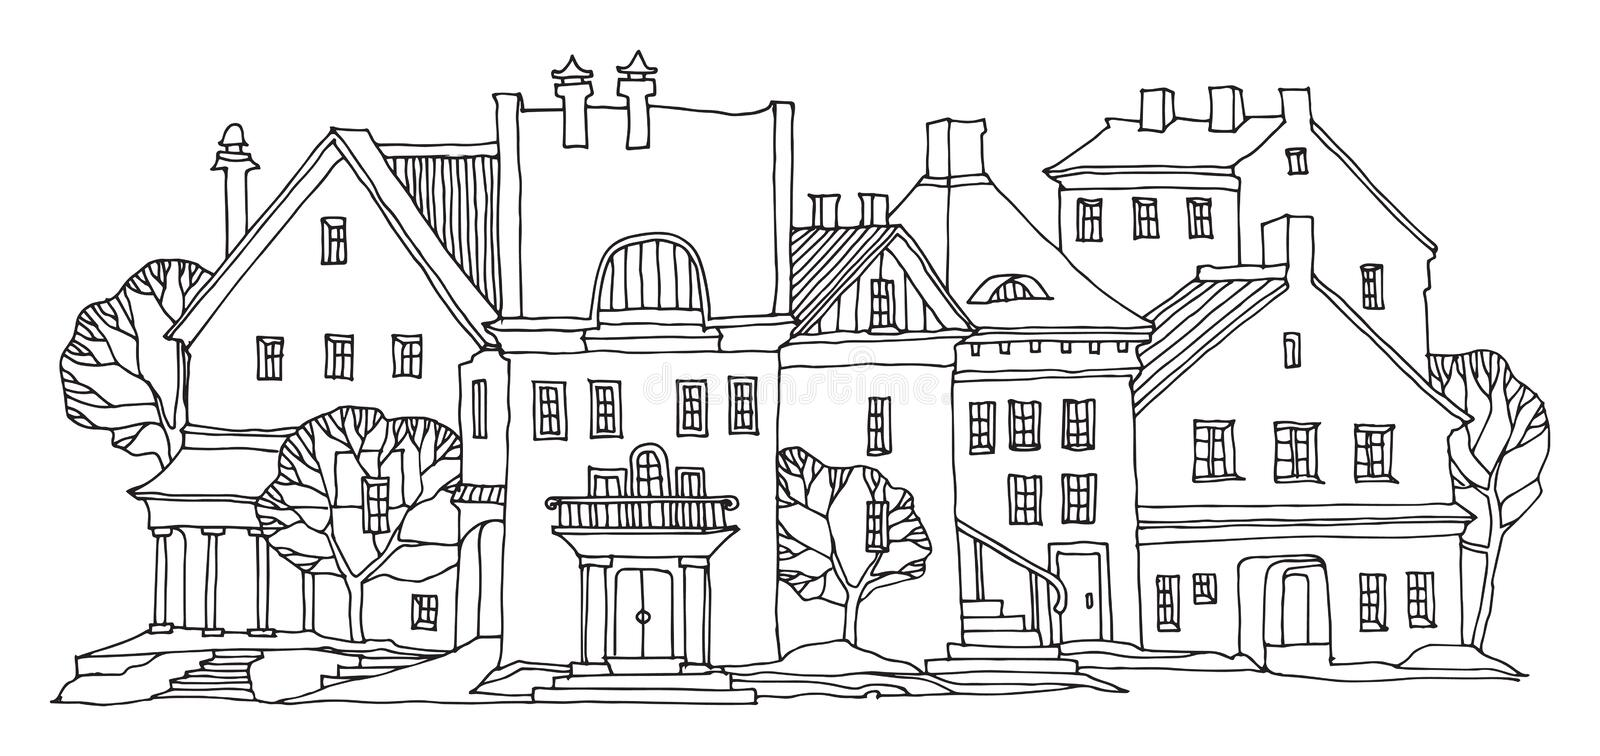 Old town city street homes sketch. Hand drawn on white background, vector illustration stock illustration